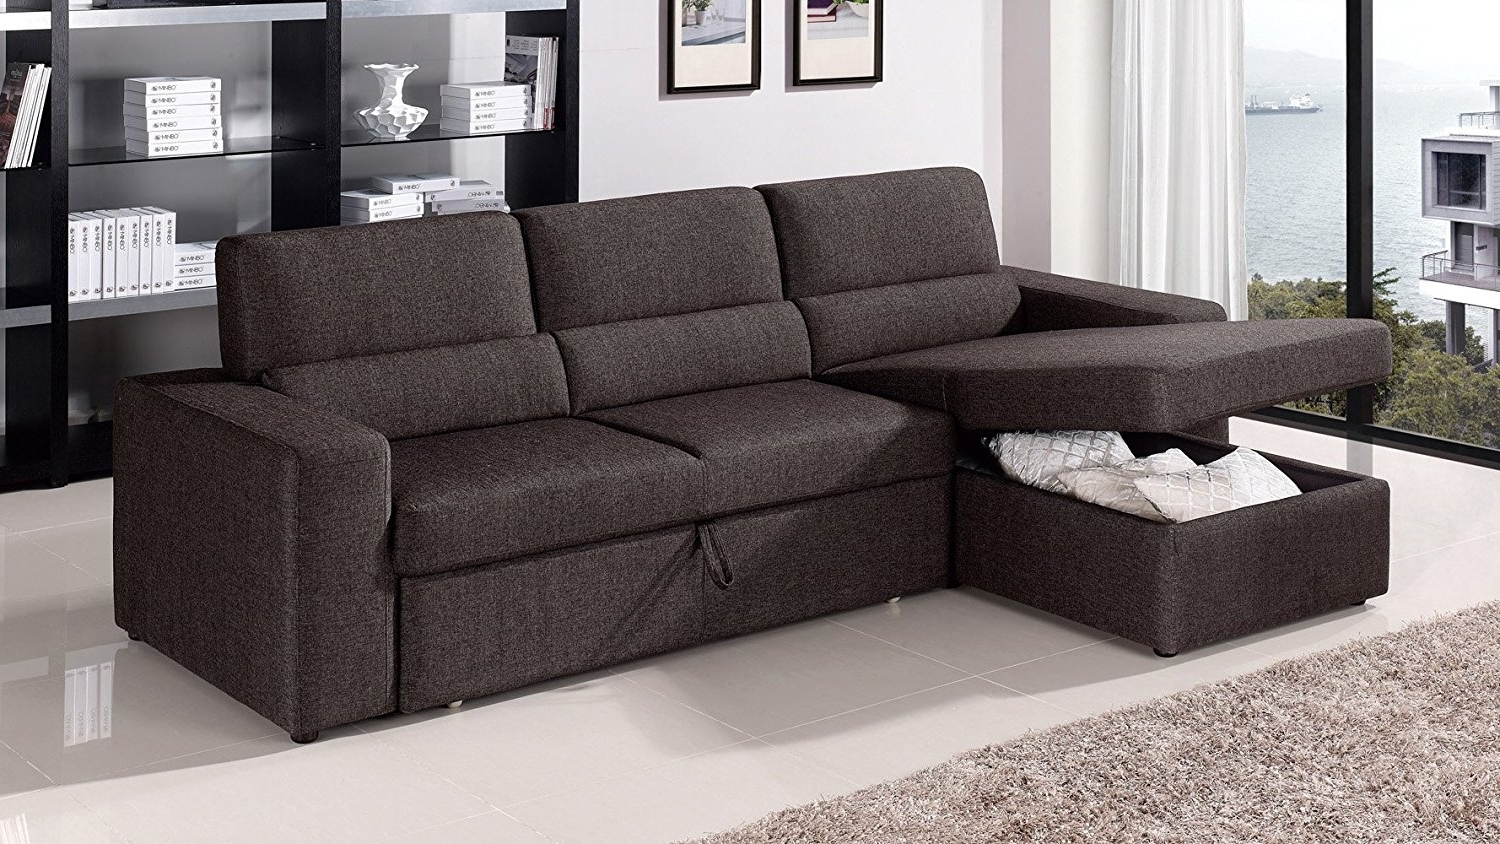 Amazon: Black/brown Clubber Sleeper Sectional Sofa – Left With Most Recently Released Chaise Sofa Sleepers (View 2 of 15)